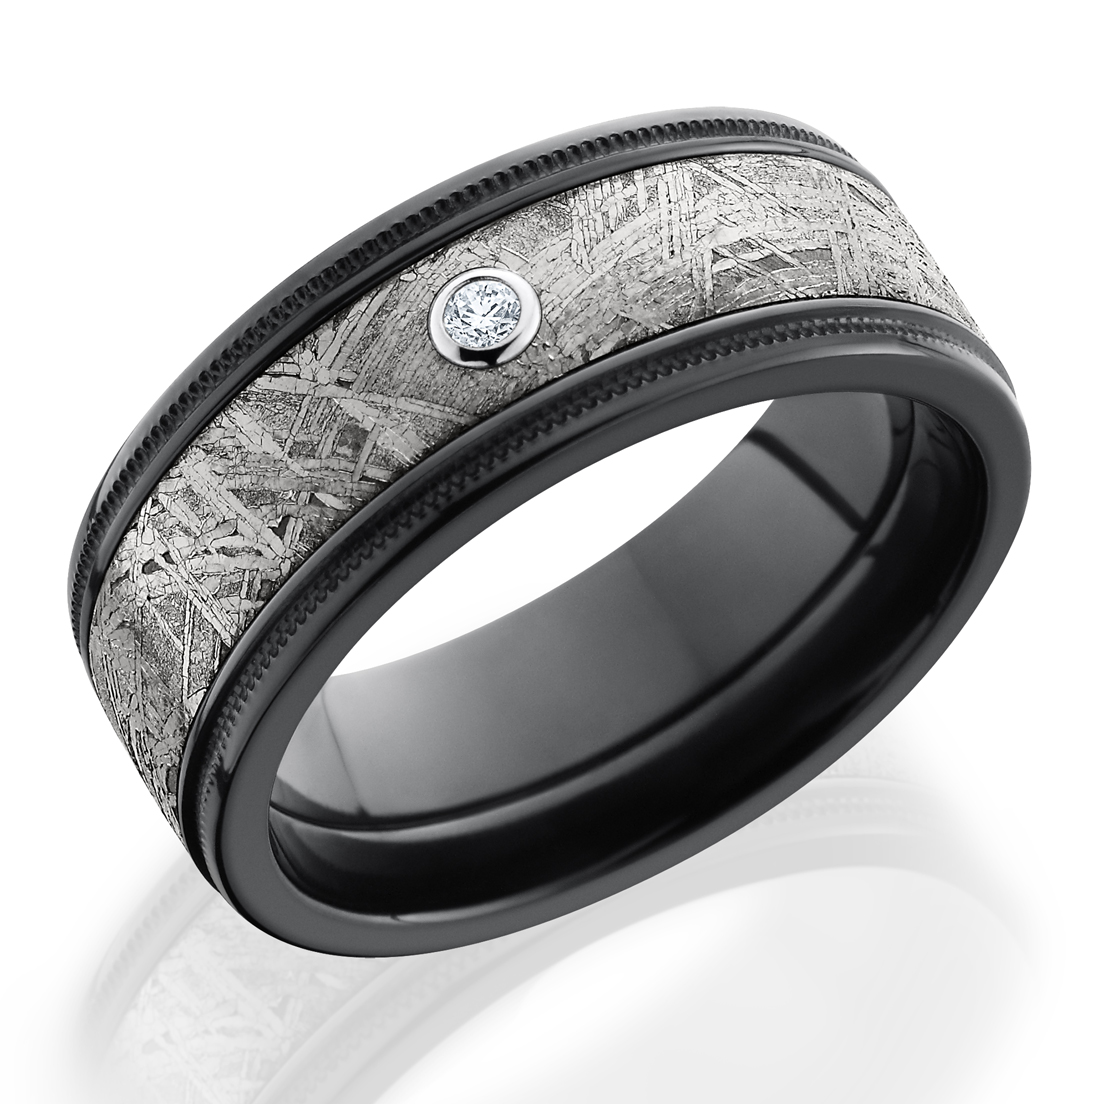 rings meteorite platinum engagement oakdale diamond in eternity ring band other jewelry